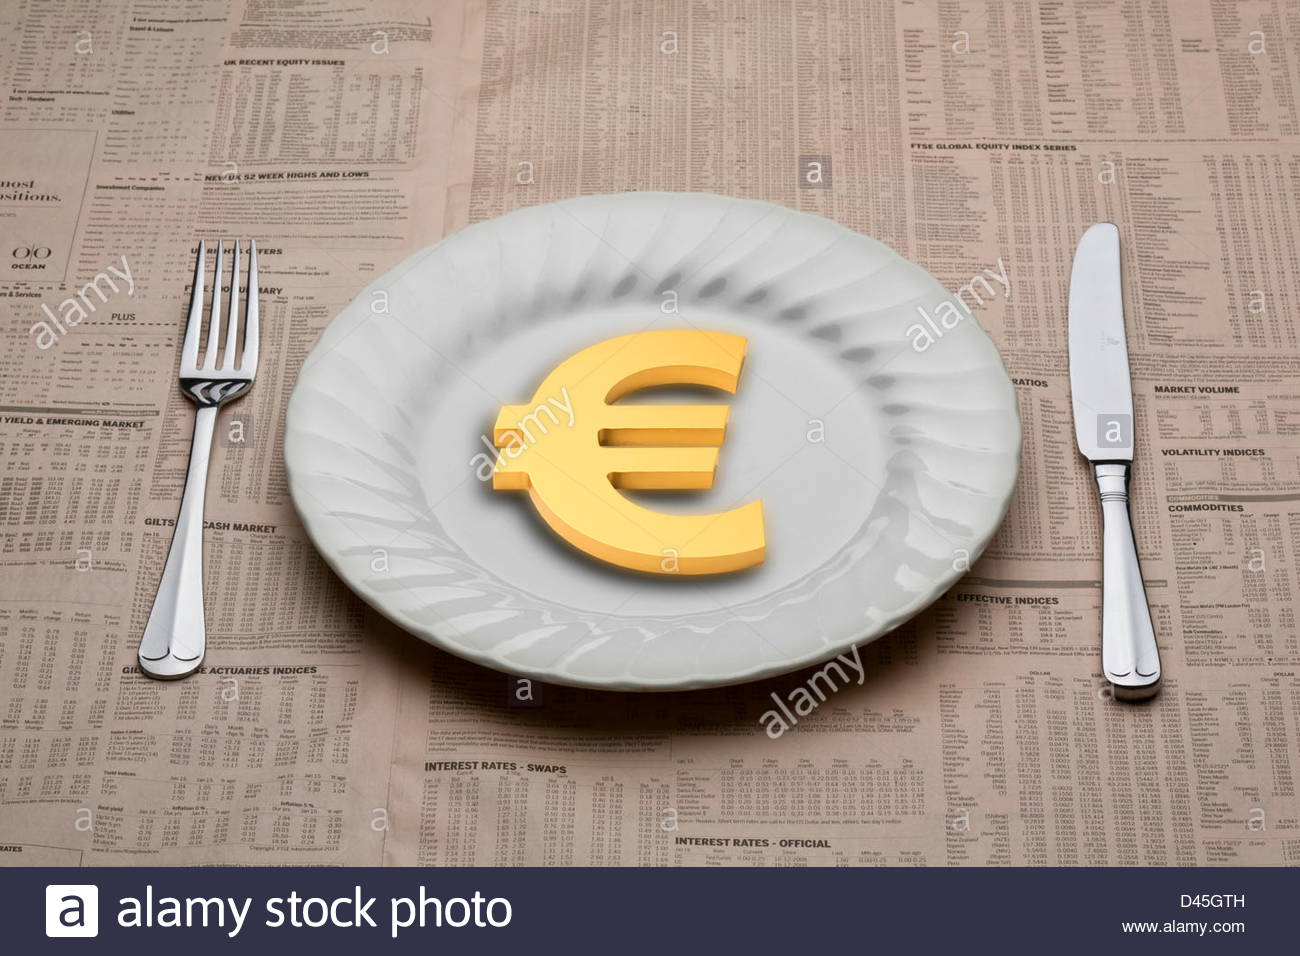 Euro symbol on a dinner plate with a knife and fork ready to eat for lunch on a table cloth of a financial newspaper - Stock Image